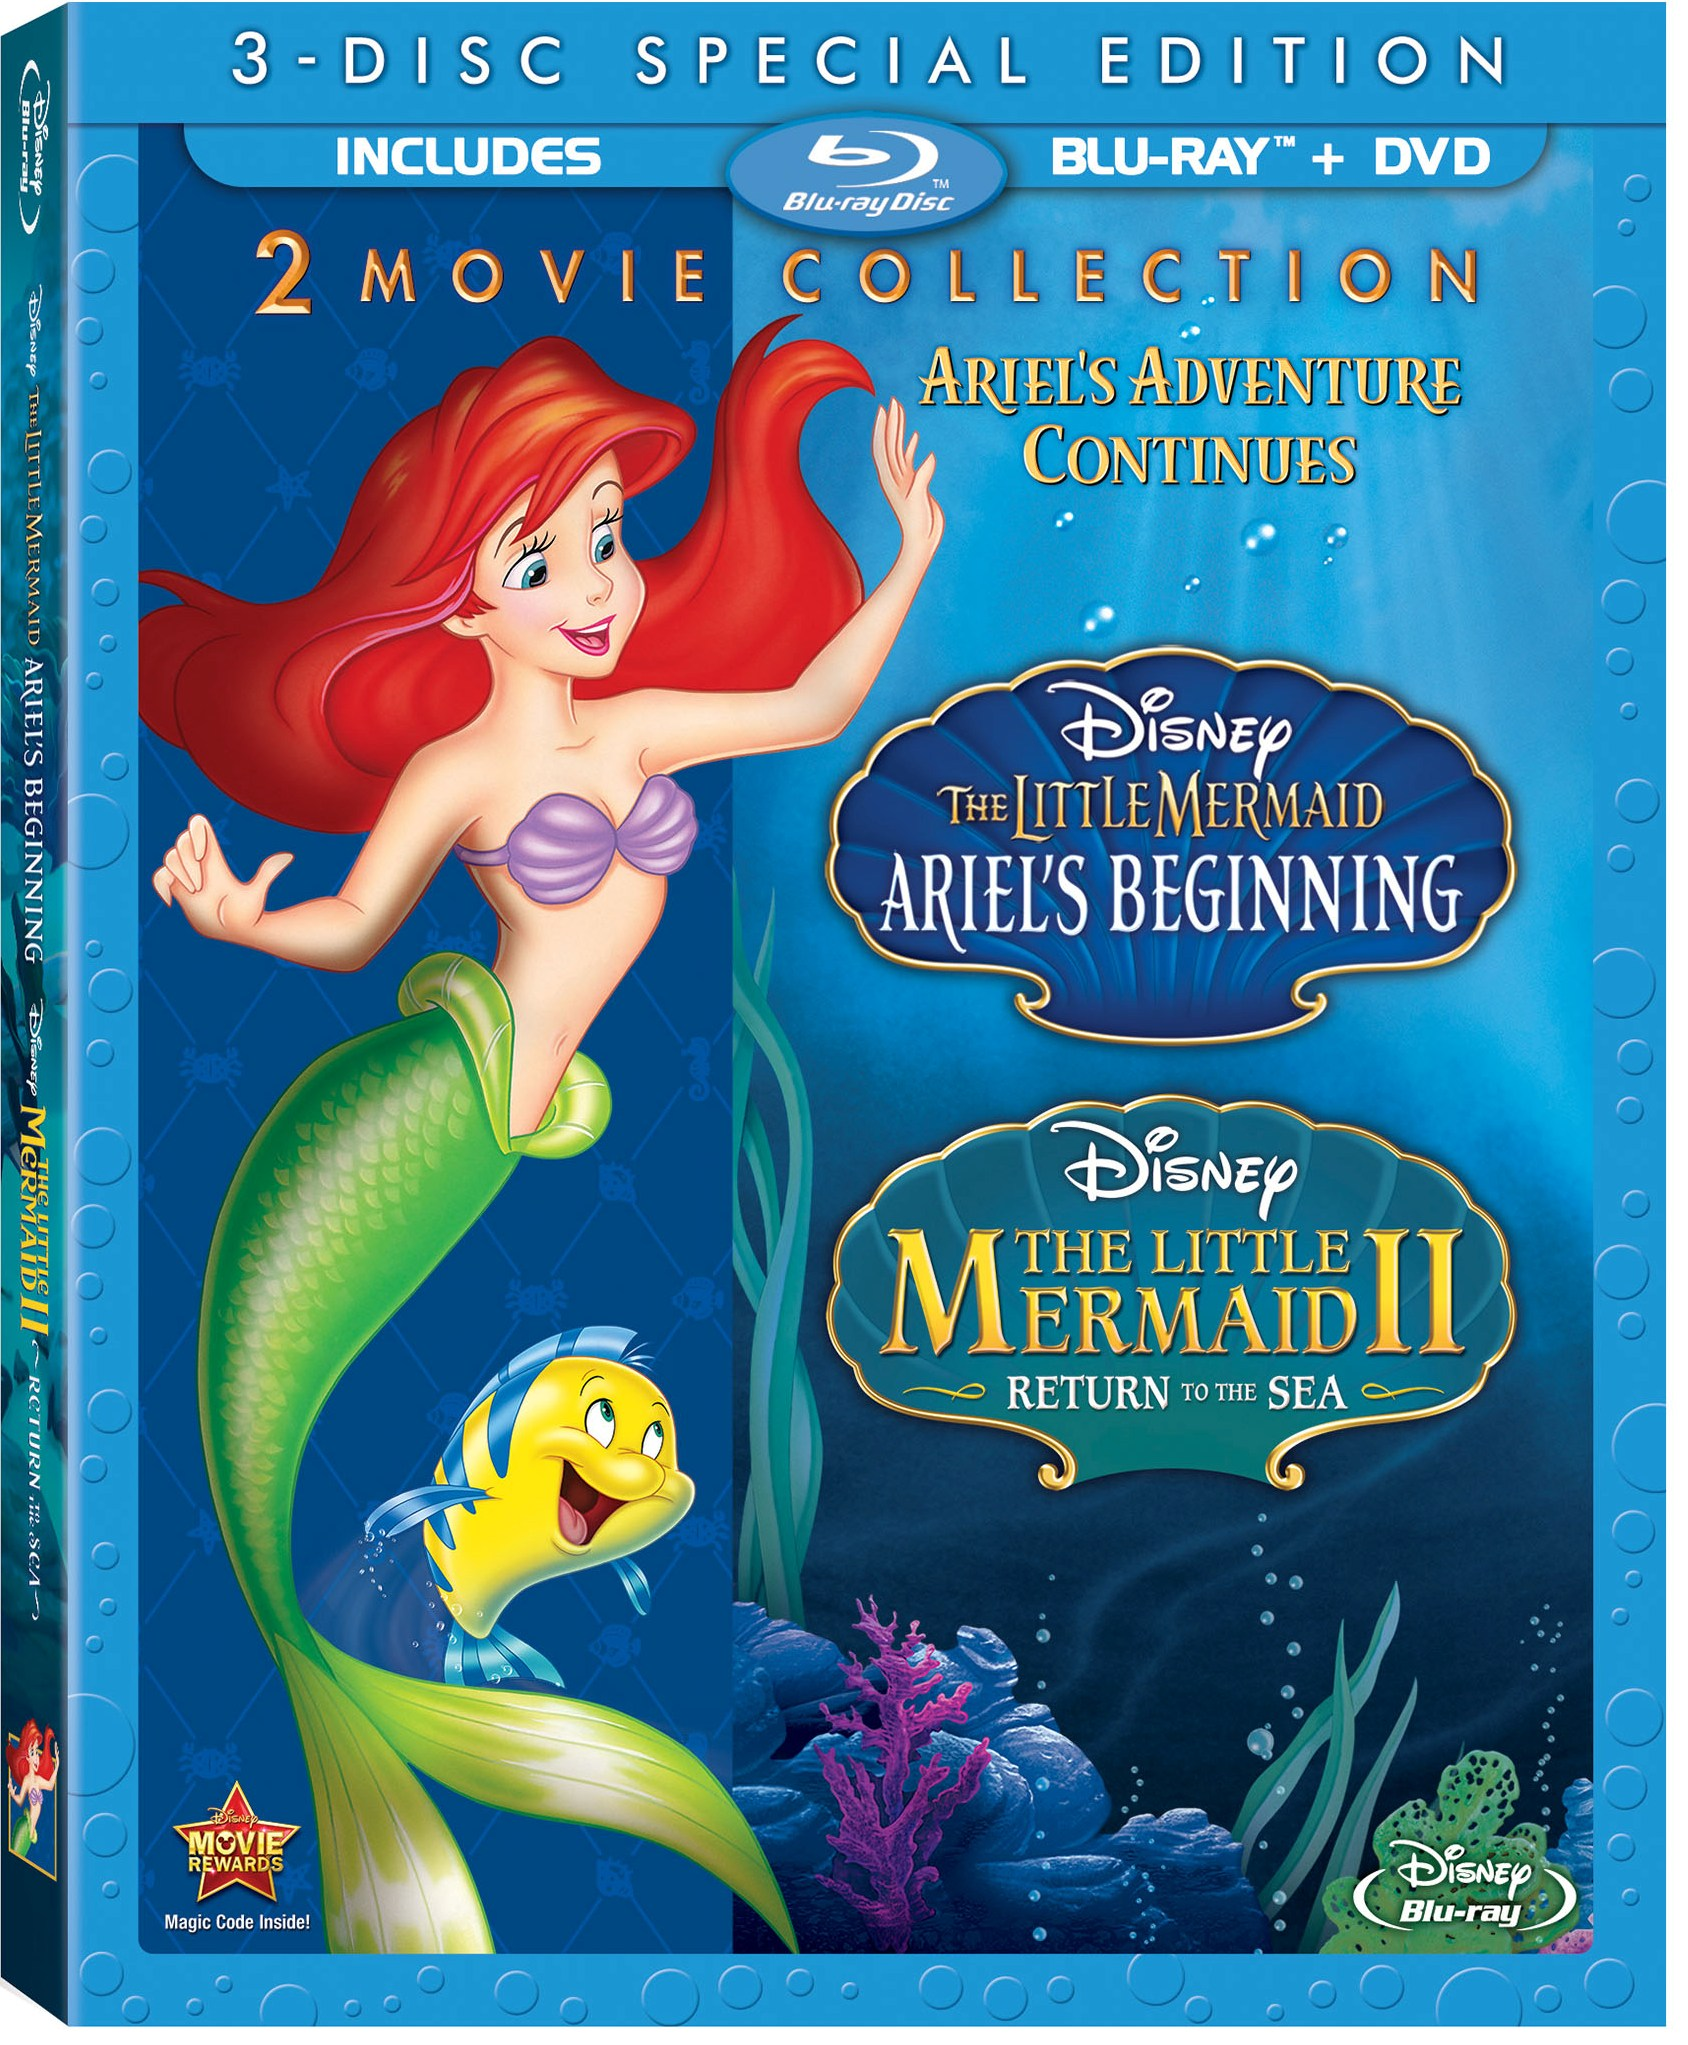 The Little Mermaid II & Ariel's Beginning Cover Art